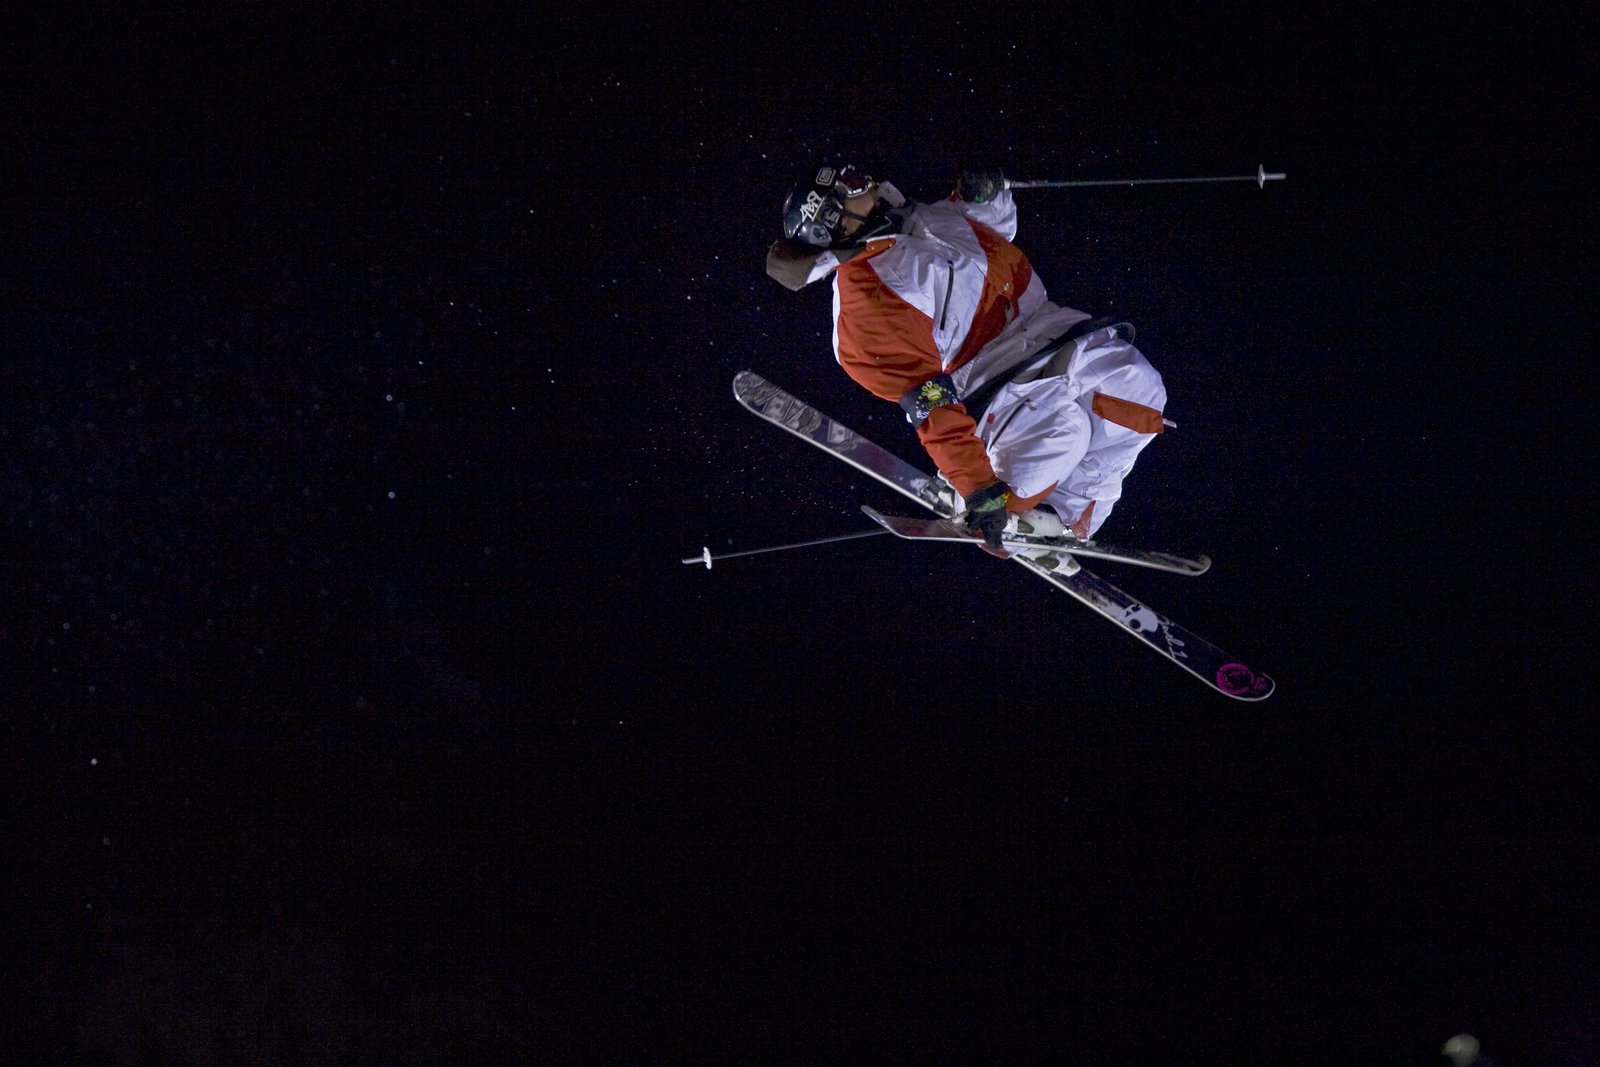 Henrik Harlaut takes a spin in the Swedish airspace